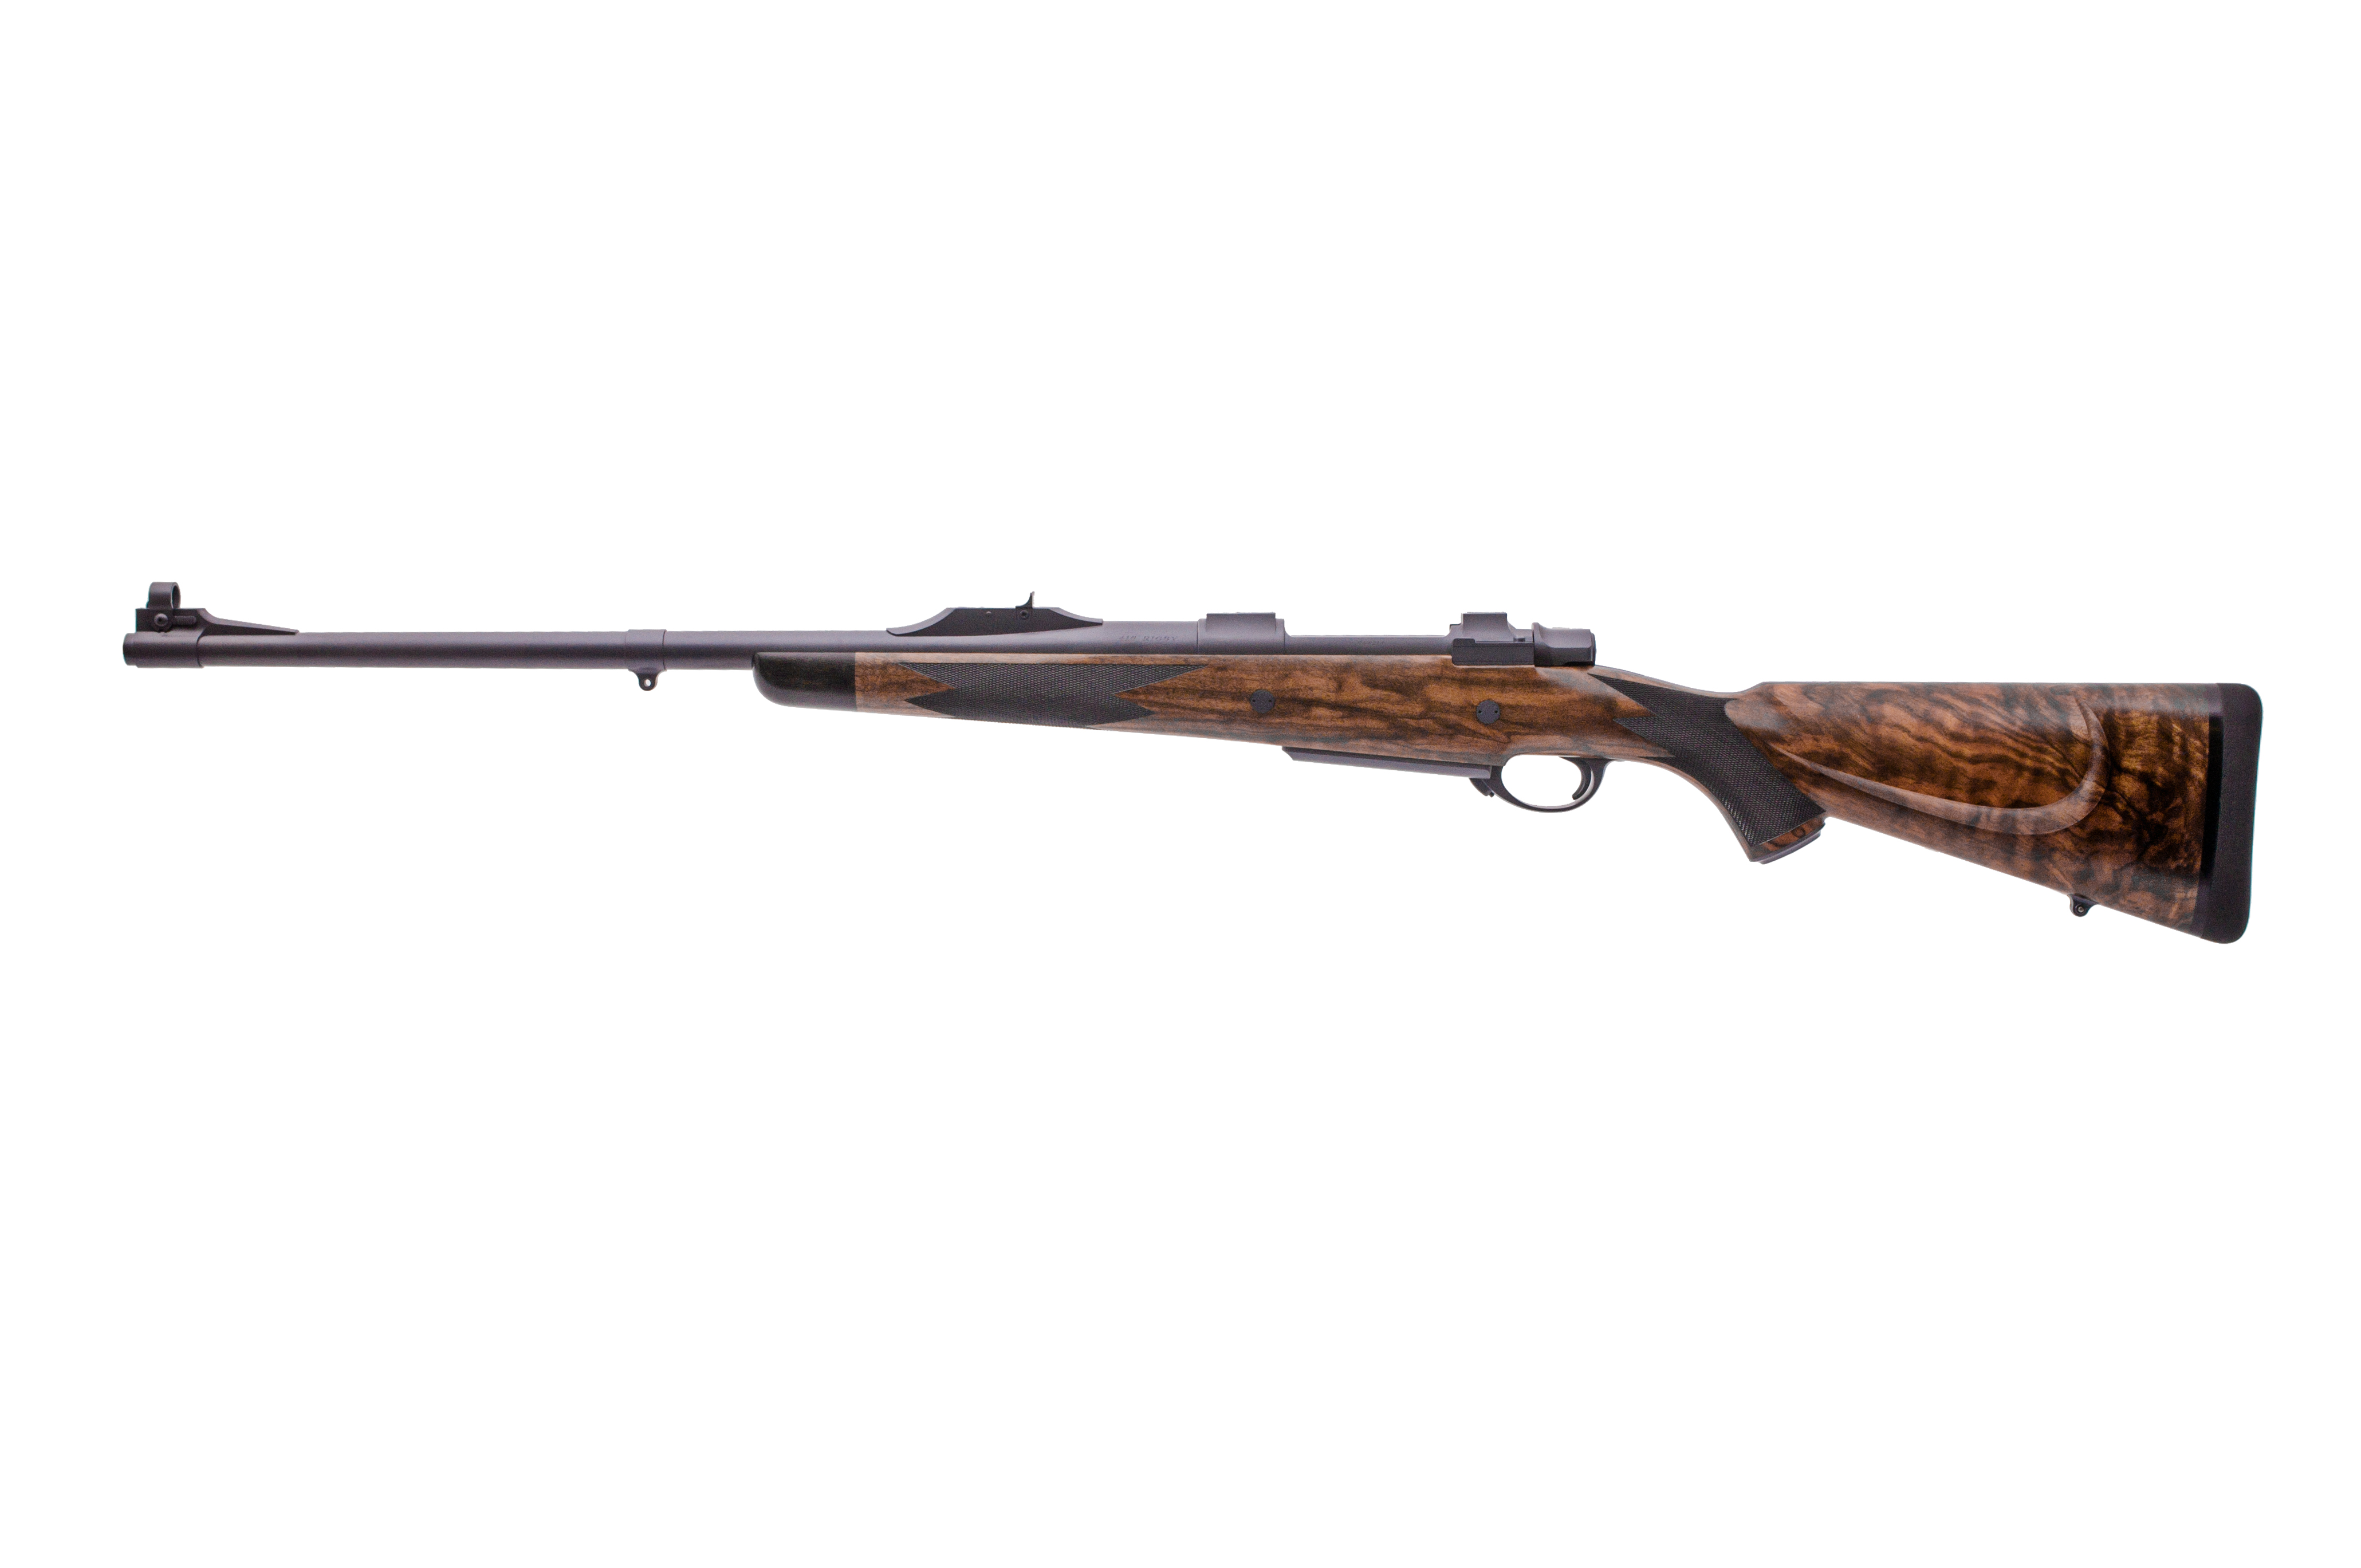 416 Rigby 24″ 5 shot Magnum Mauser with Extended Tangs | Ryan